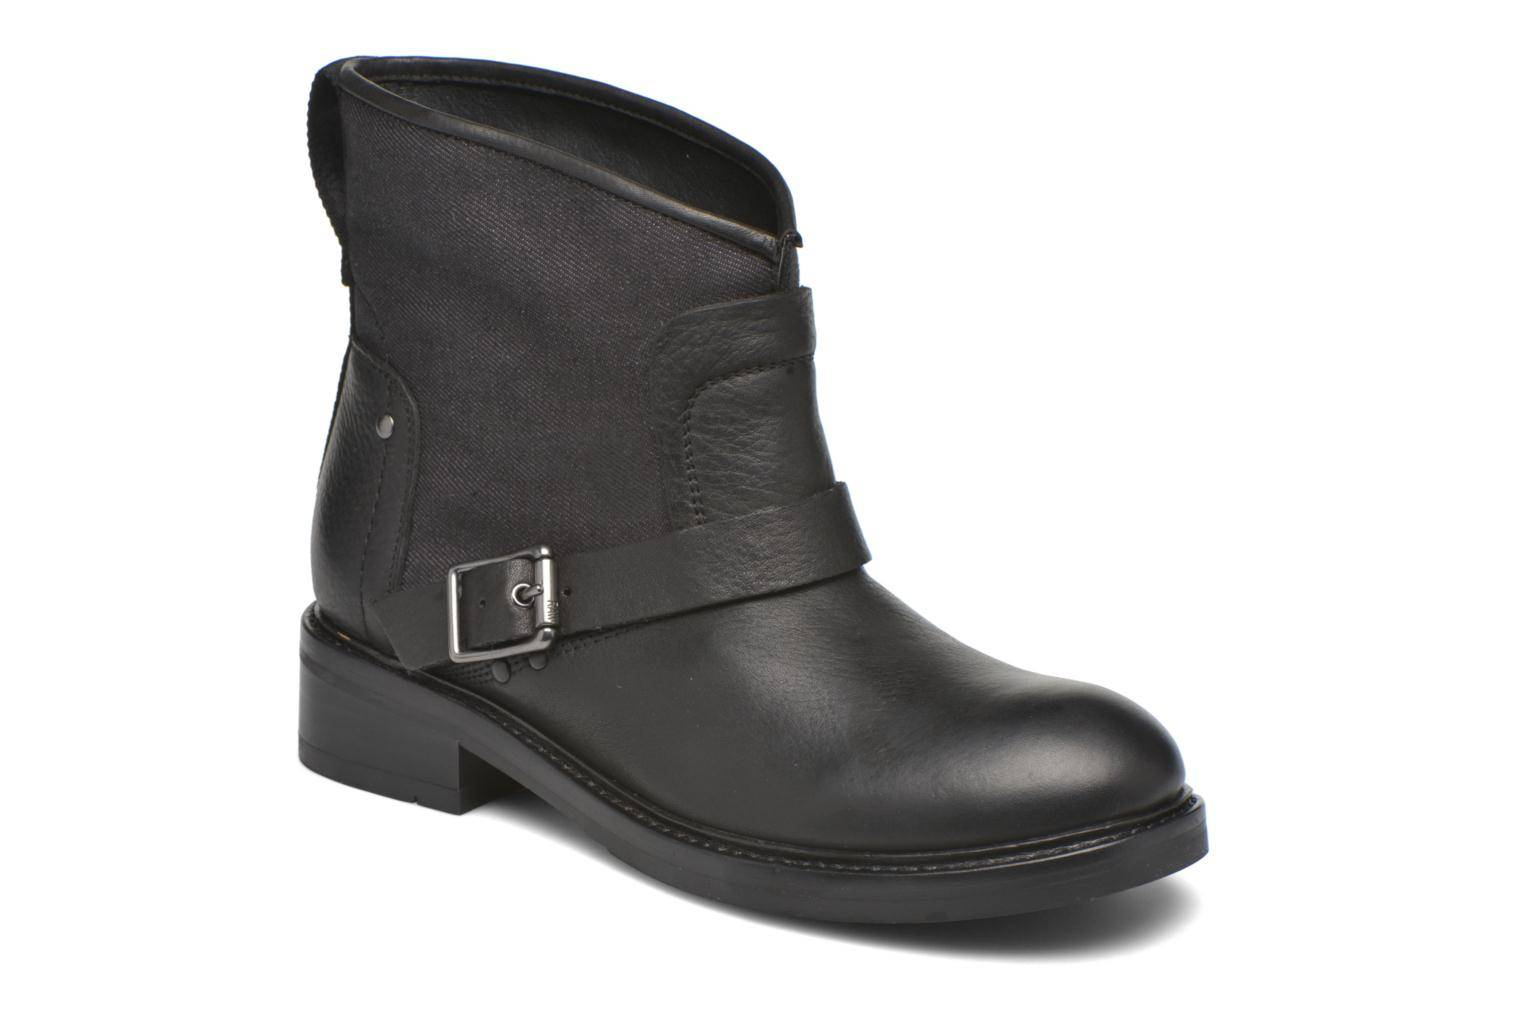 G-Star - Leon boot W by  - Nilkkurit Naisille  / Musta